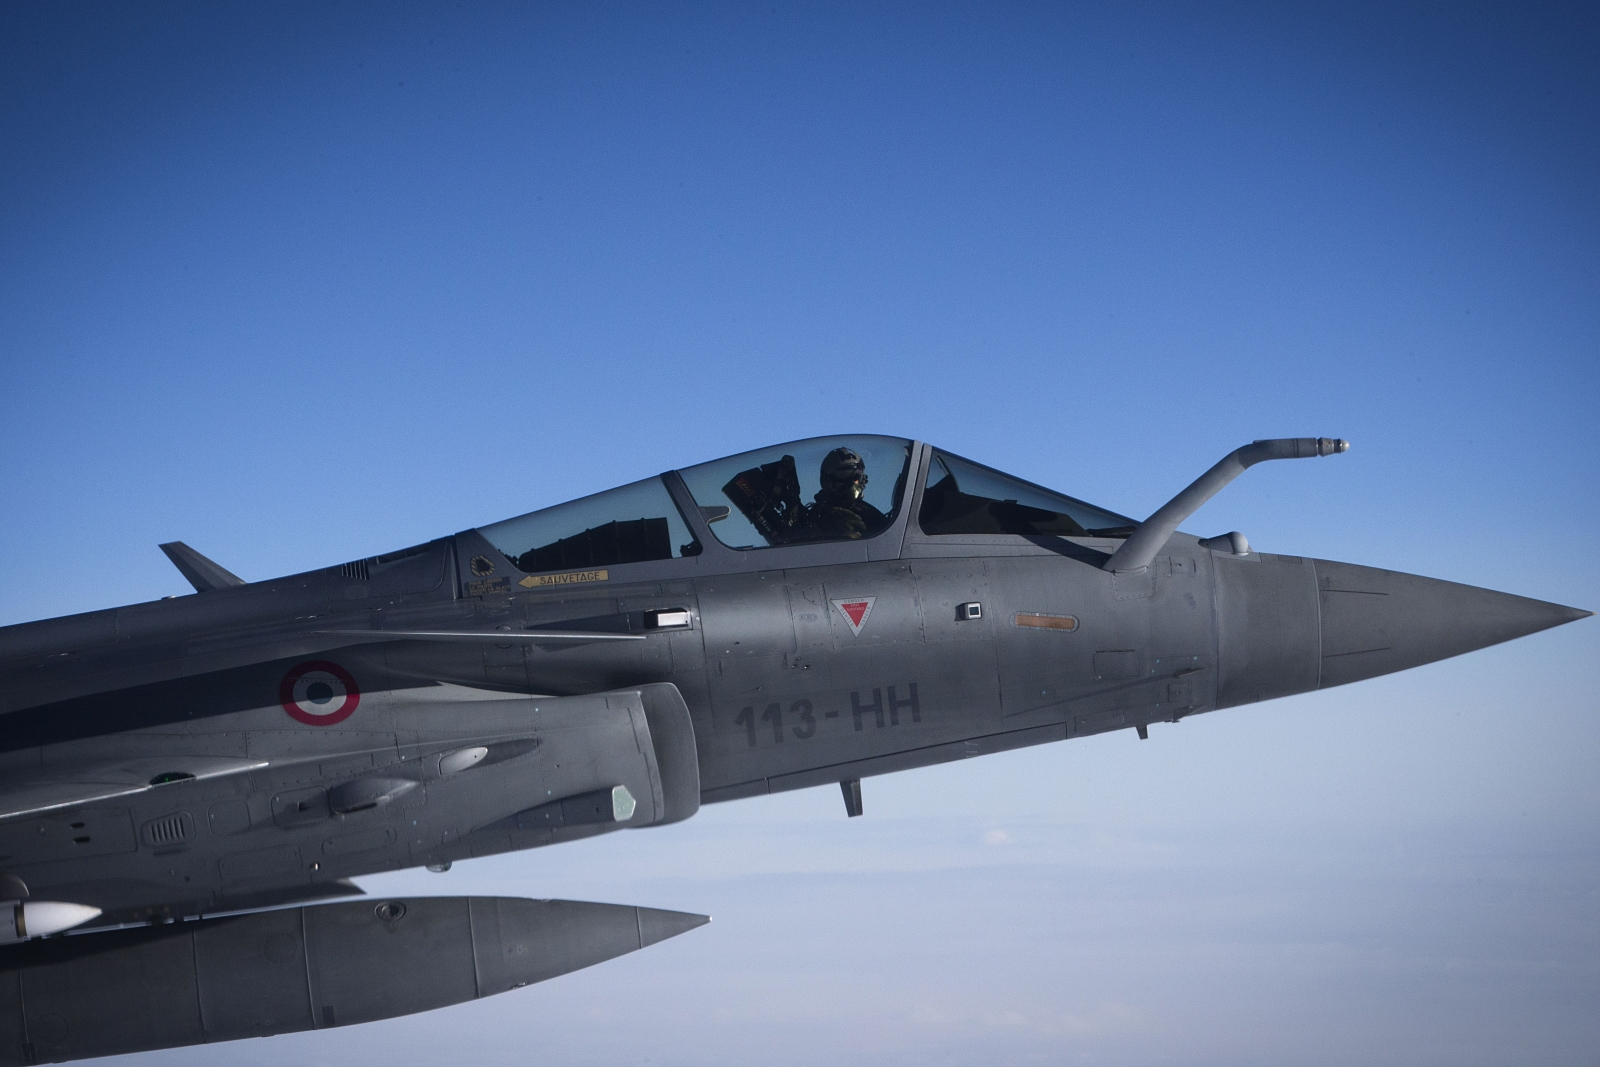 French Rafale fighter jets have bombed an arms dump and fuel depot in Iraq